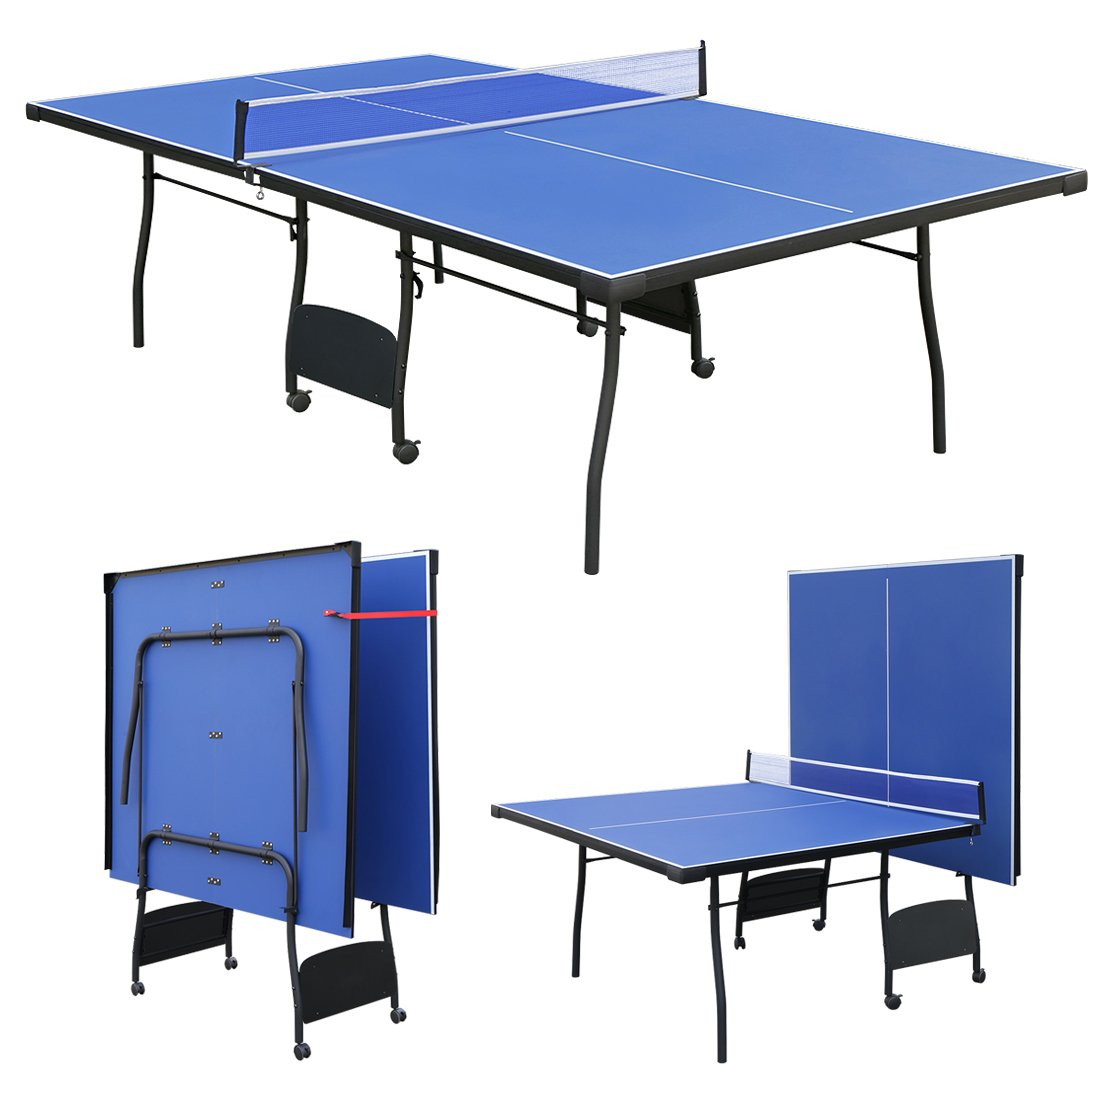 - Hyner 9FT Table Tennis Table Outdoor Indoor Full Size Ping Pong